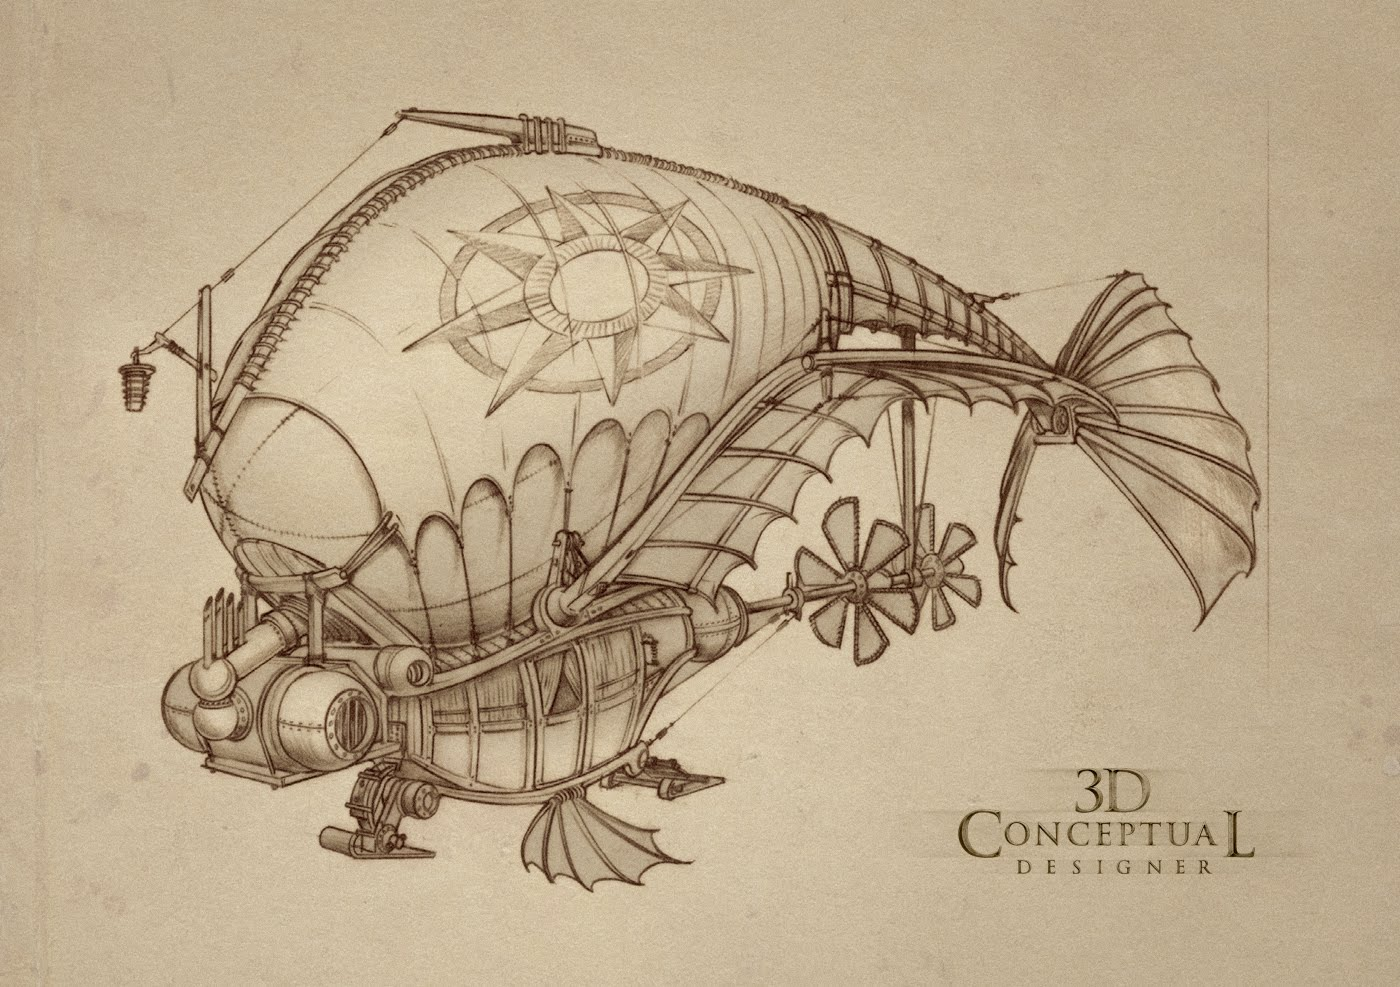 One of my favorite designs from exile the flying fish coach